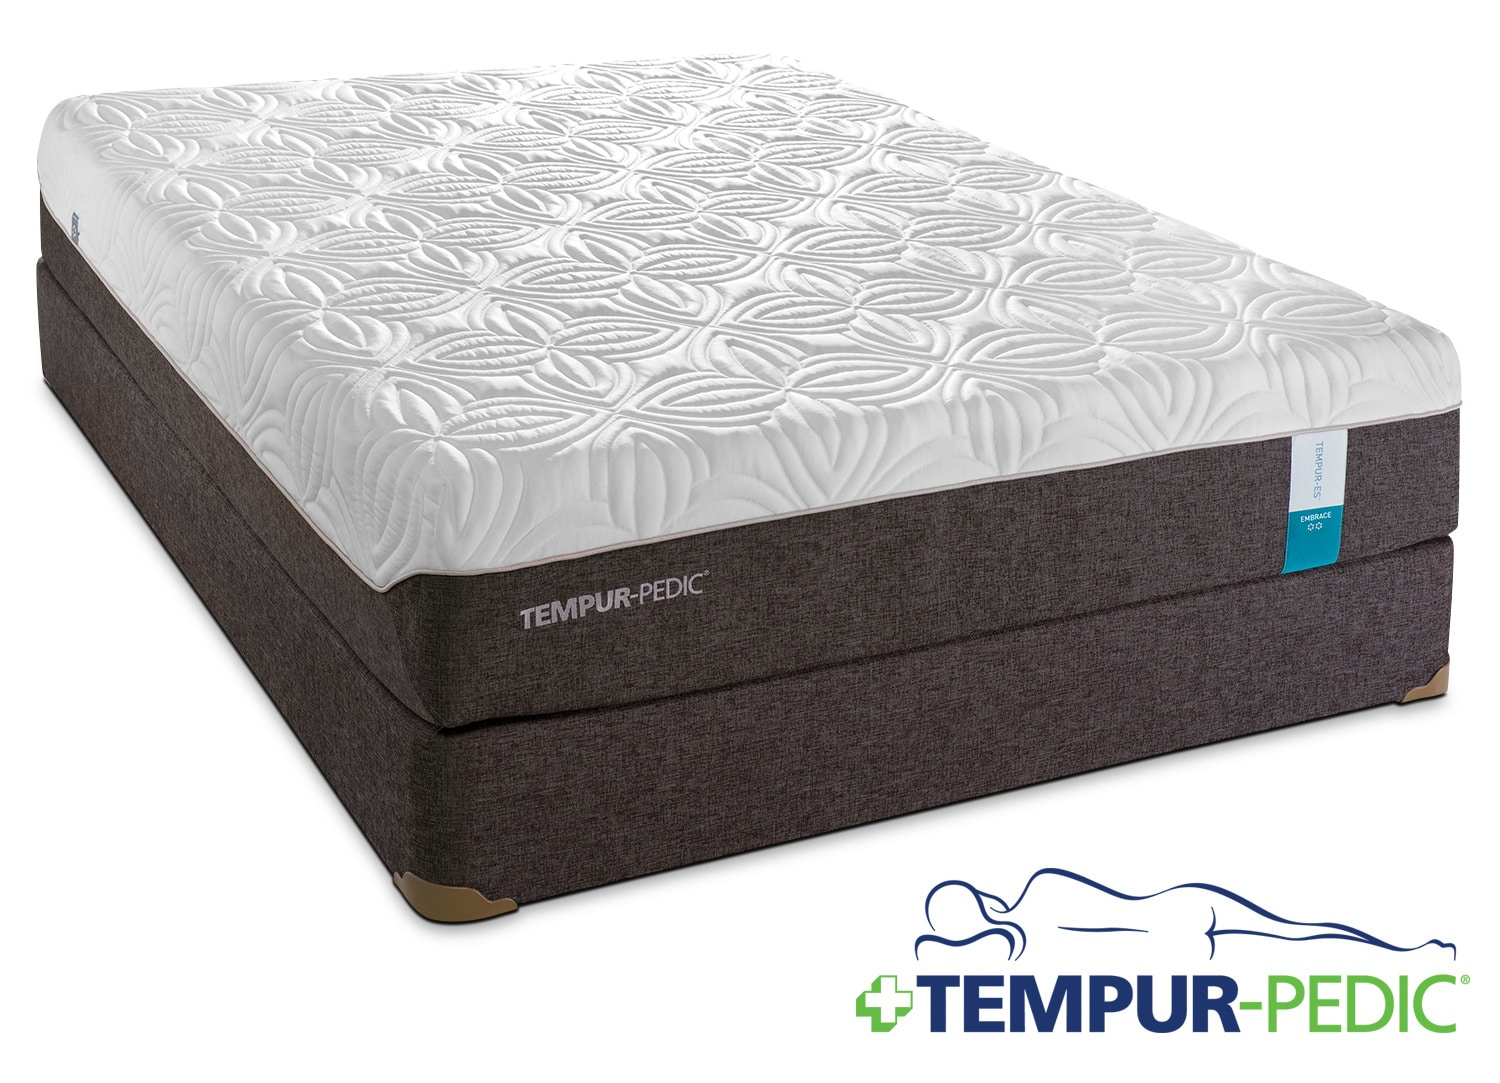 Tempur-Pedic Embrace 2.0 Plush Full Mattress and Boxspring Set